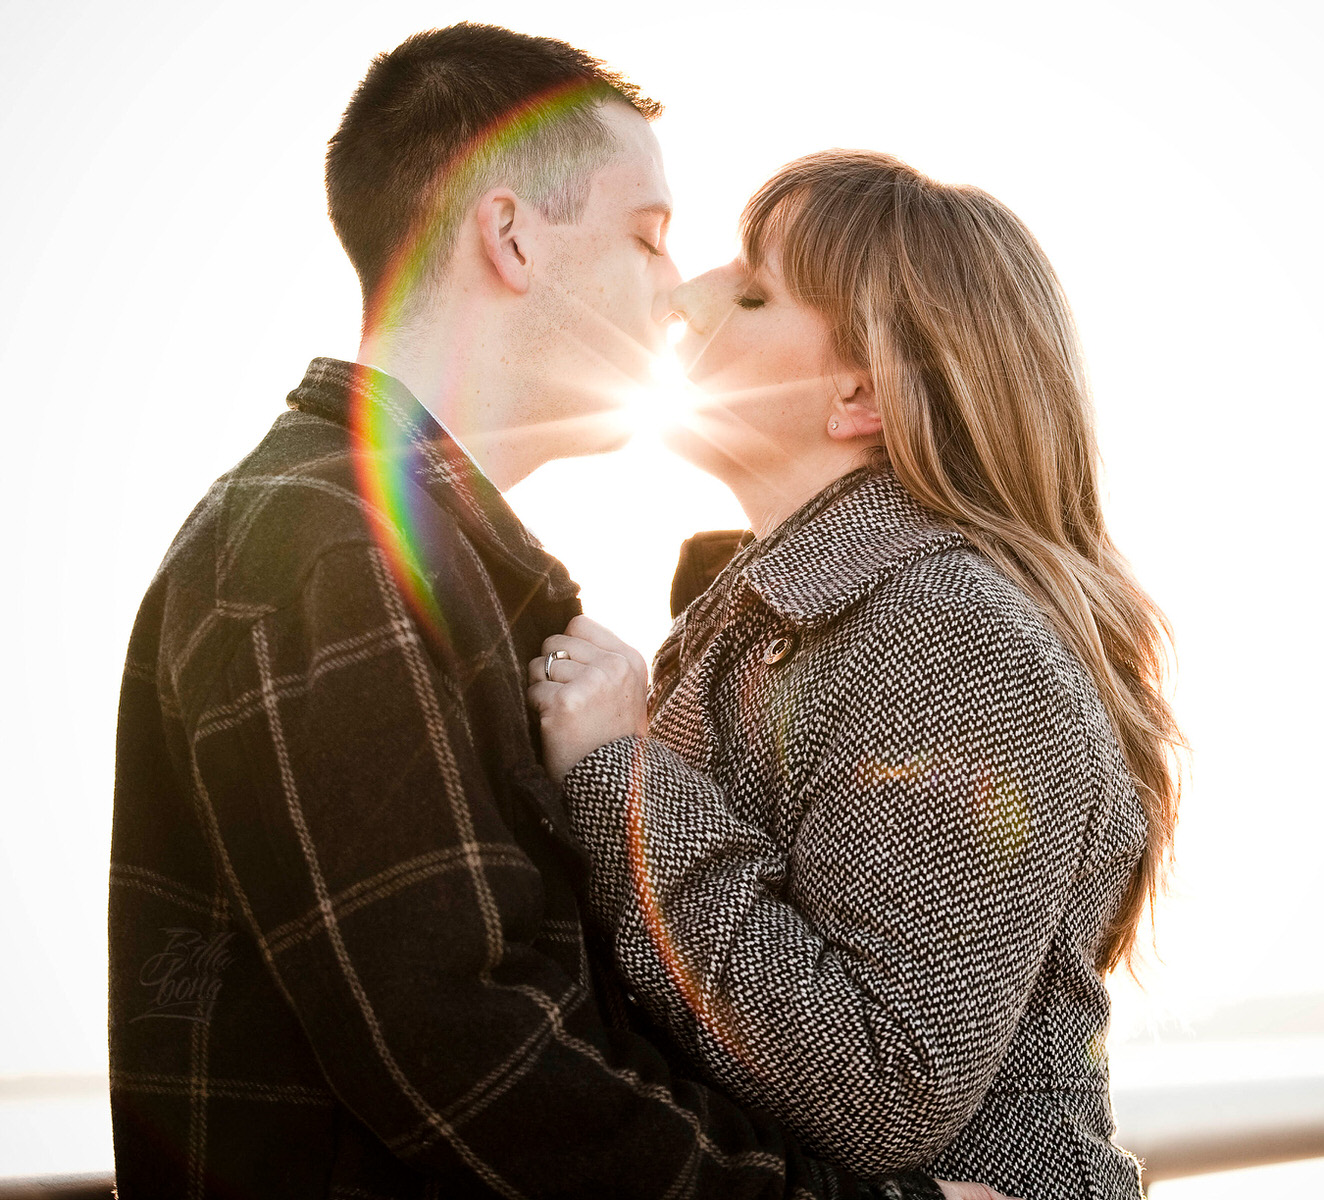 new-york-city-engagement-session-portrait-photography-nyc.jpg